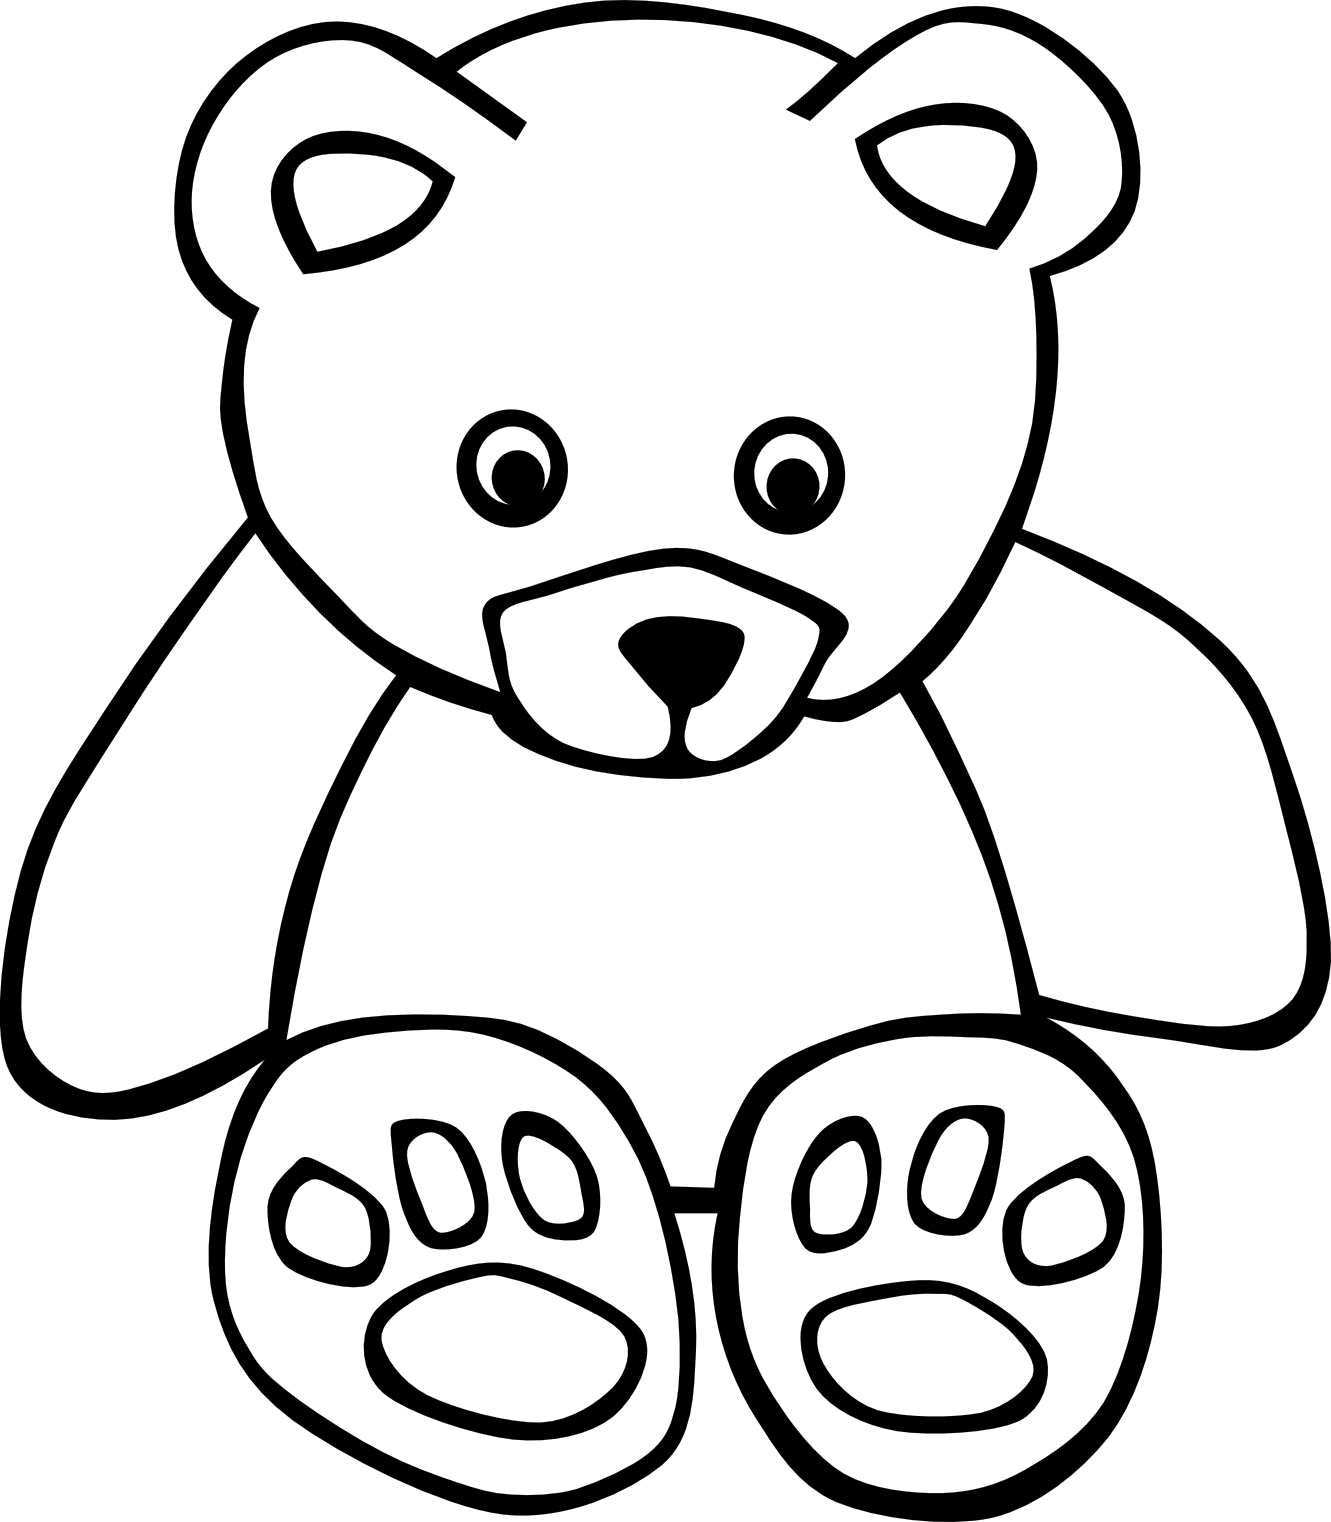 Black and white clipart #8